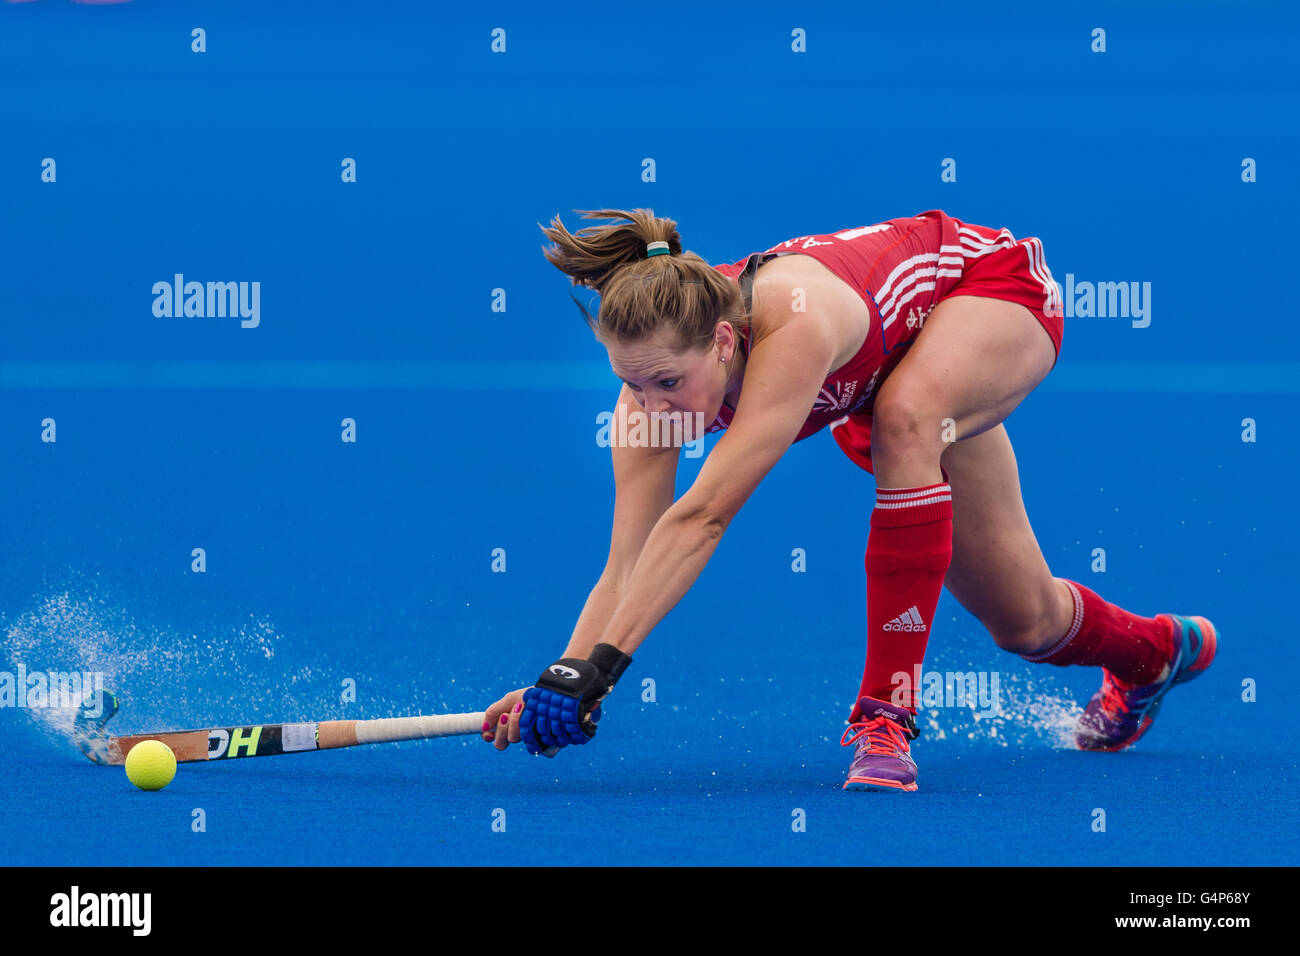 London, UK. 18th June, 2016. Giselle Ansley of Great Britain was hitting the ball during the Hockey Women's - Stock Image